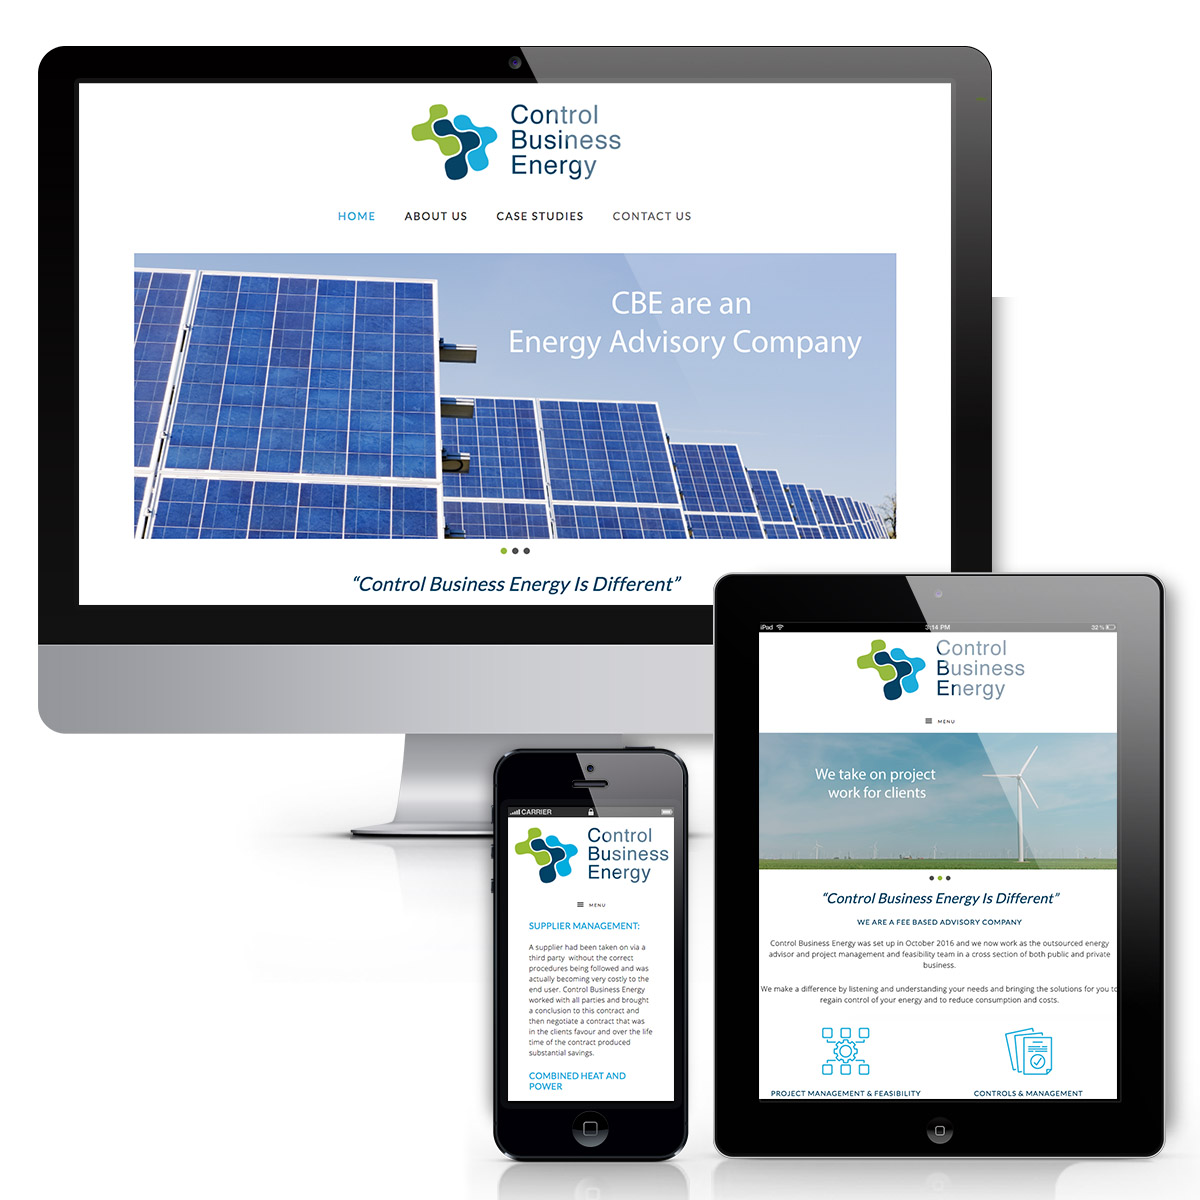 Control Business Energy Website Design